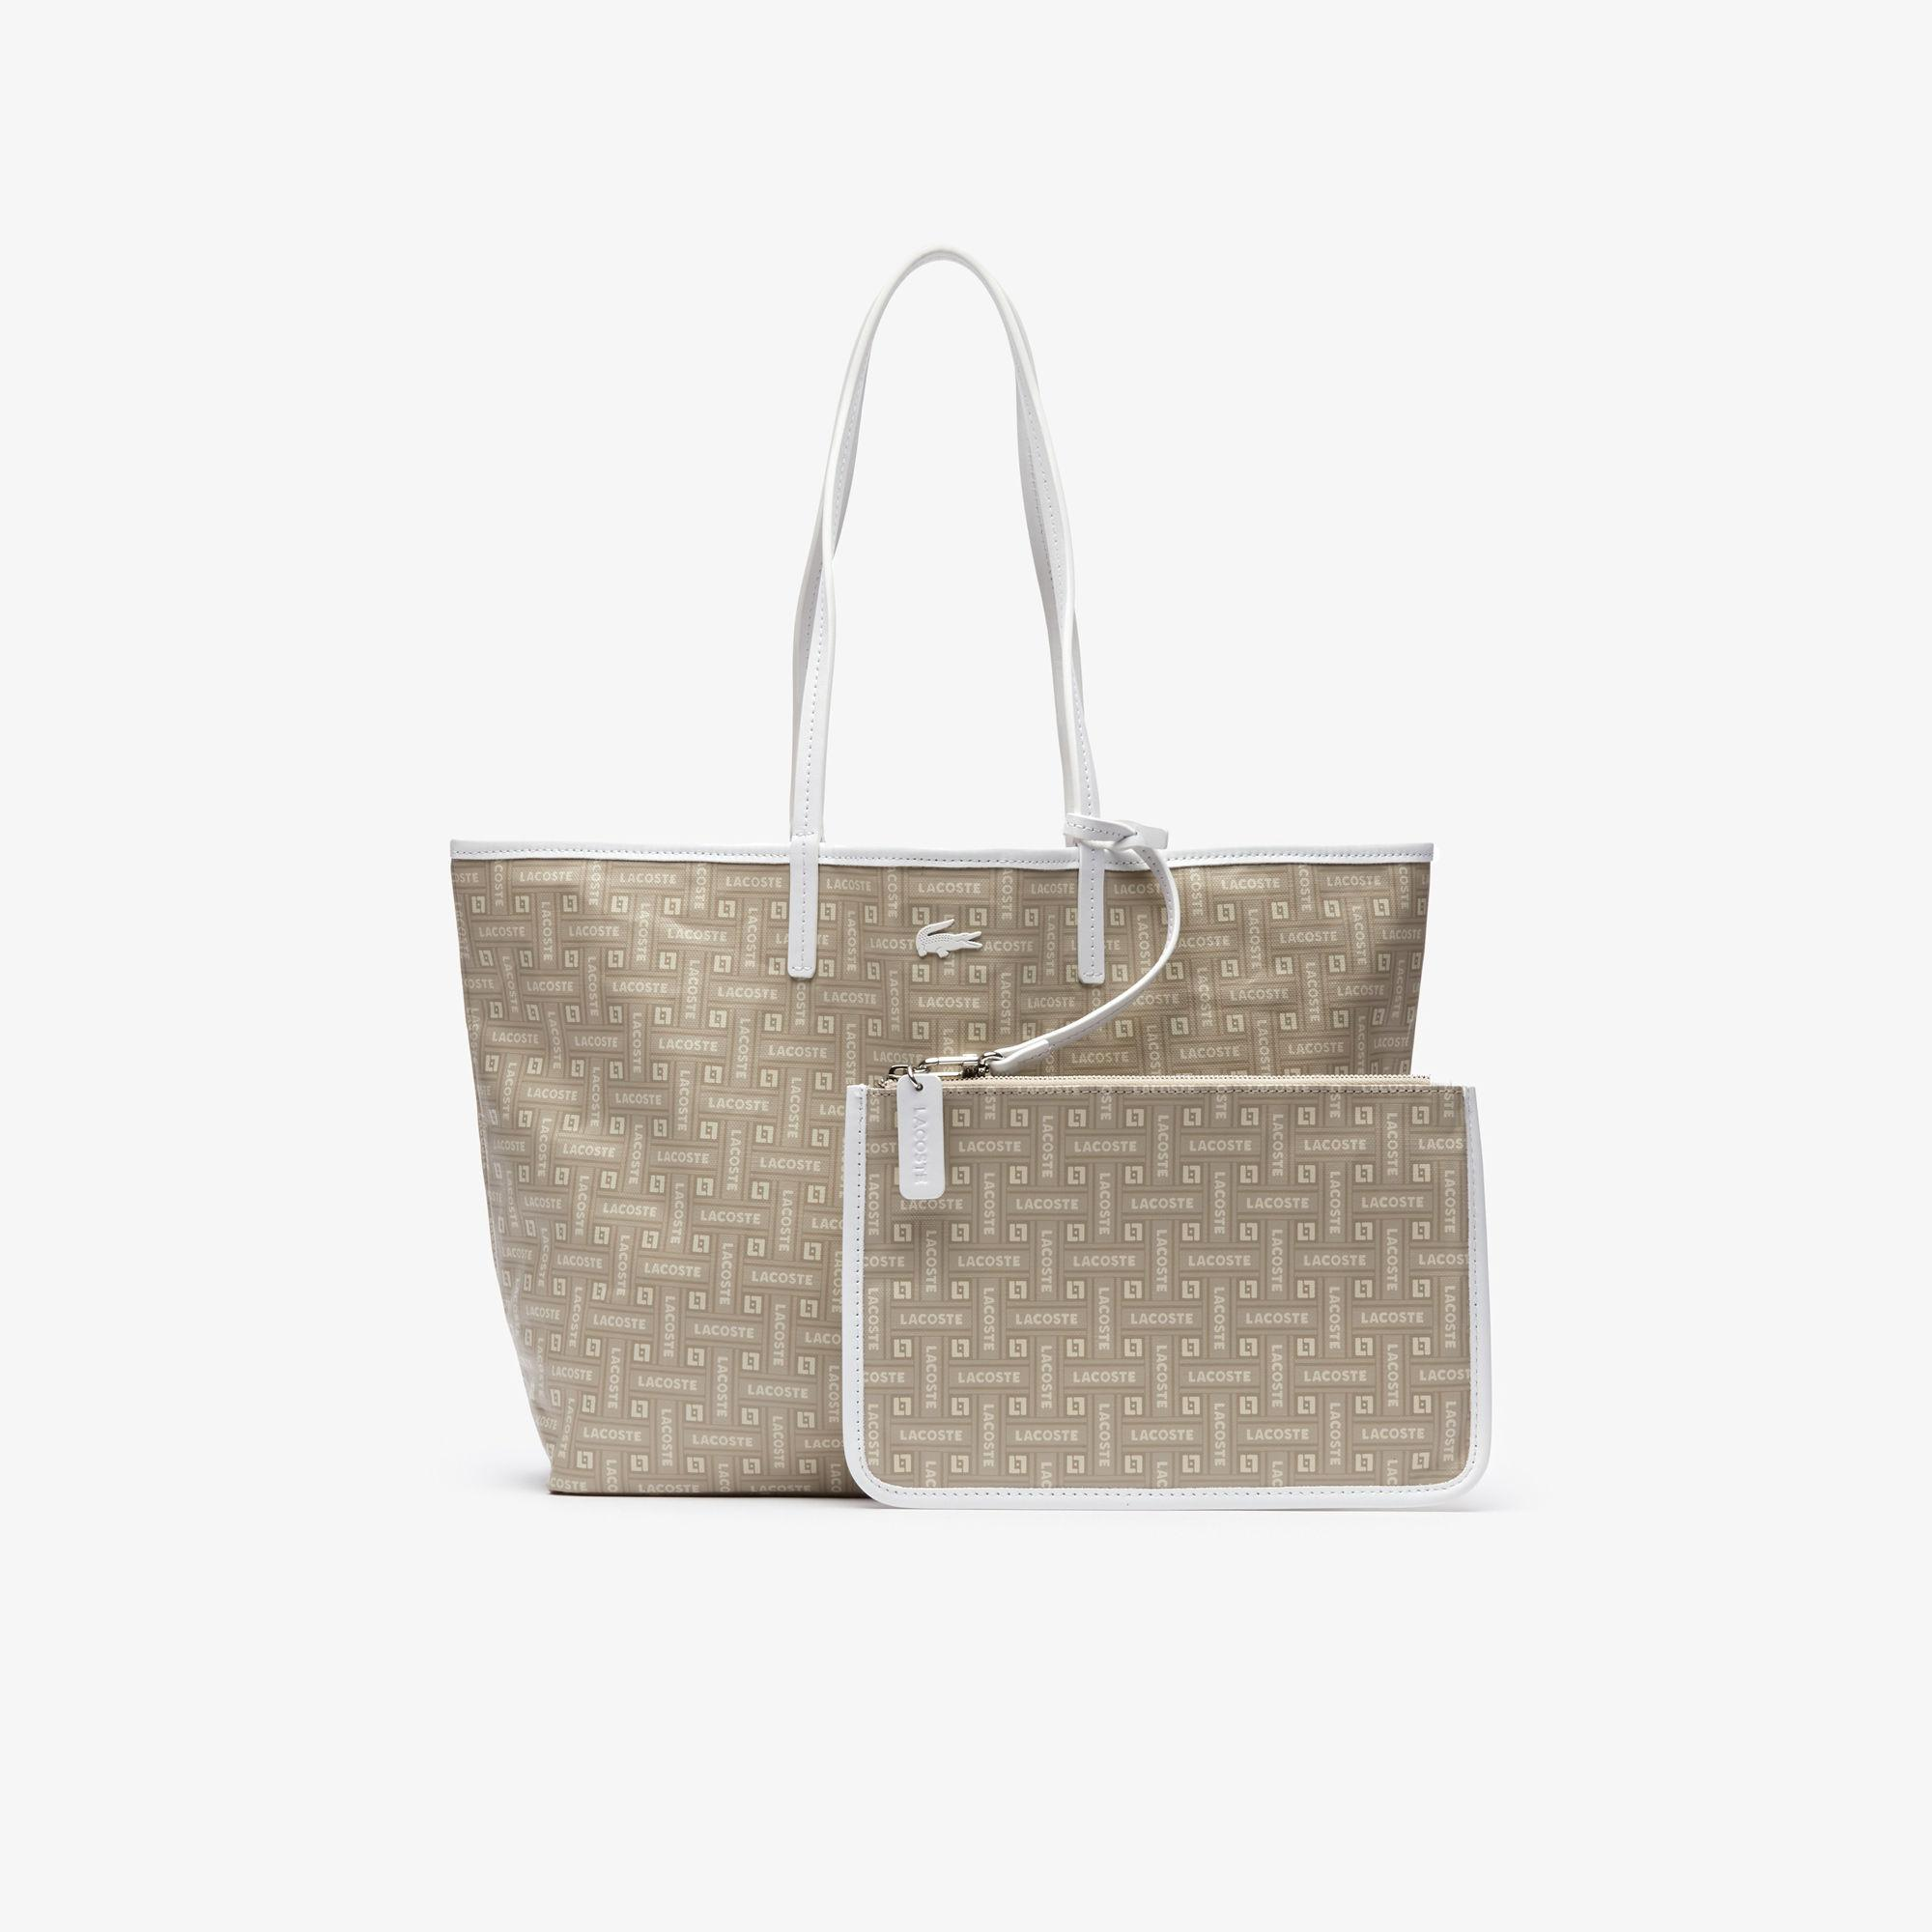 Coated Cotton Canvas Tote Bag Lyst View Fullscreen